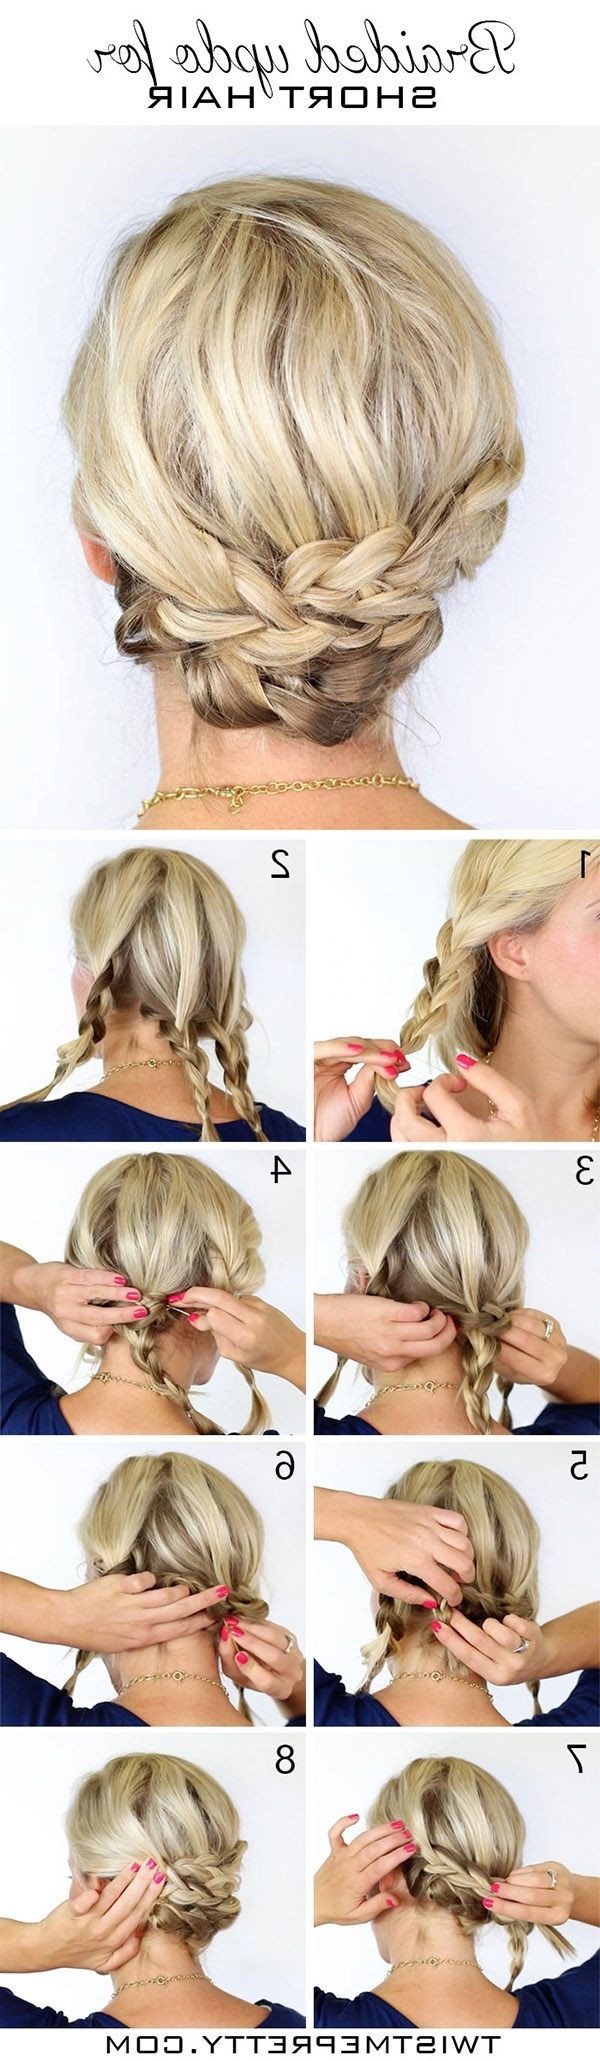 20 Diy Wedding Hairstyles With Tutorials To Try On Your Own For Trendy Elegant Wedding Hairstyles For Short Hair (View 14 of 15)